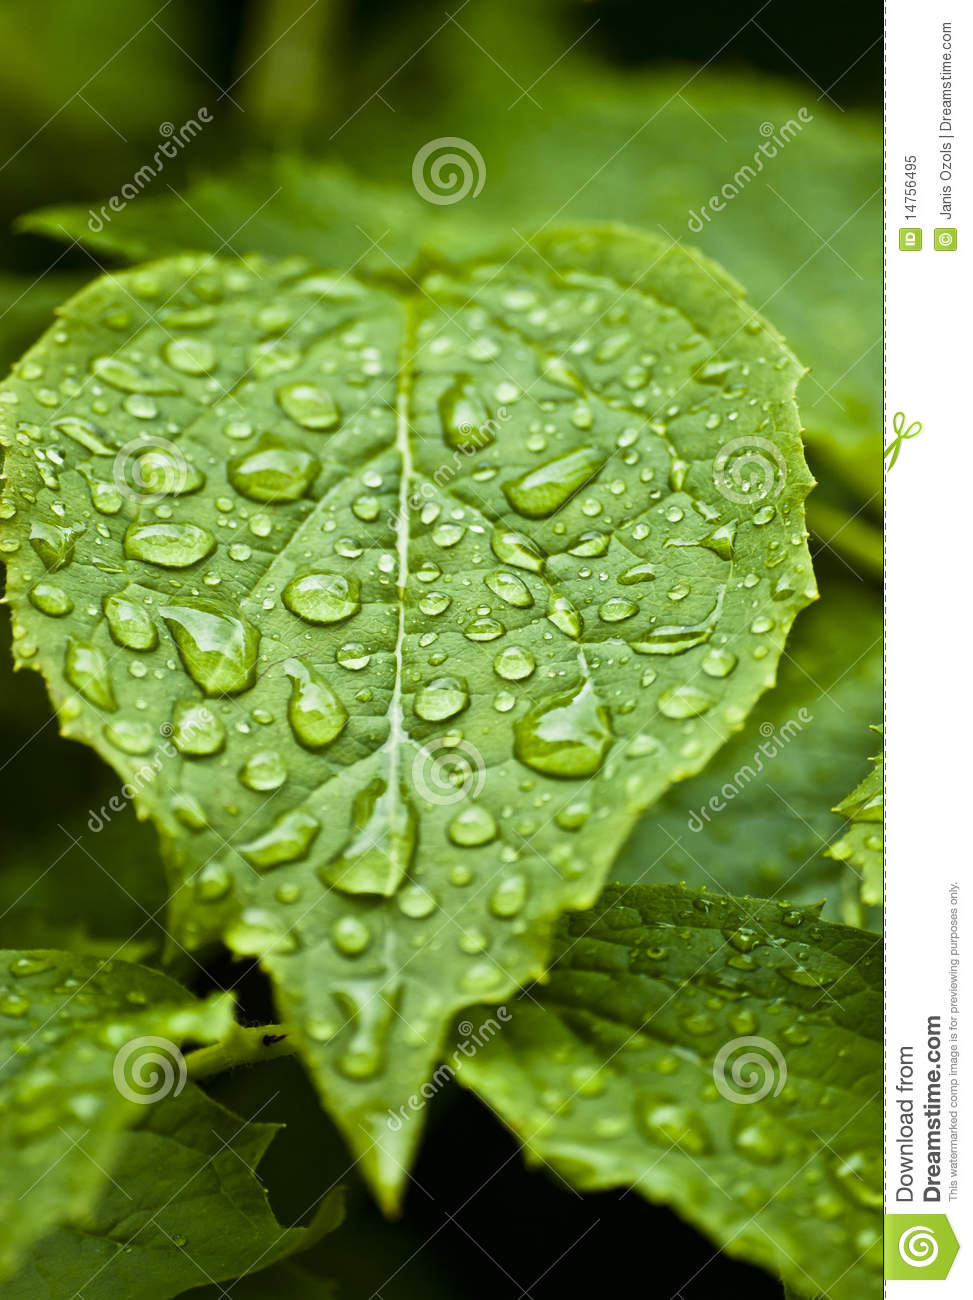 Background Wallpaper Hd 3d Leaf With Rain Drops Royalty Free Stock Photo Image